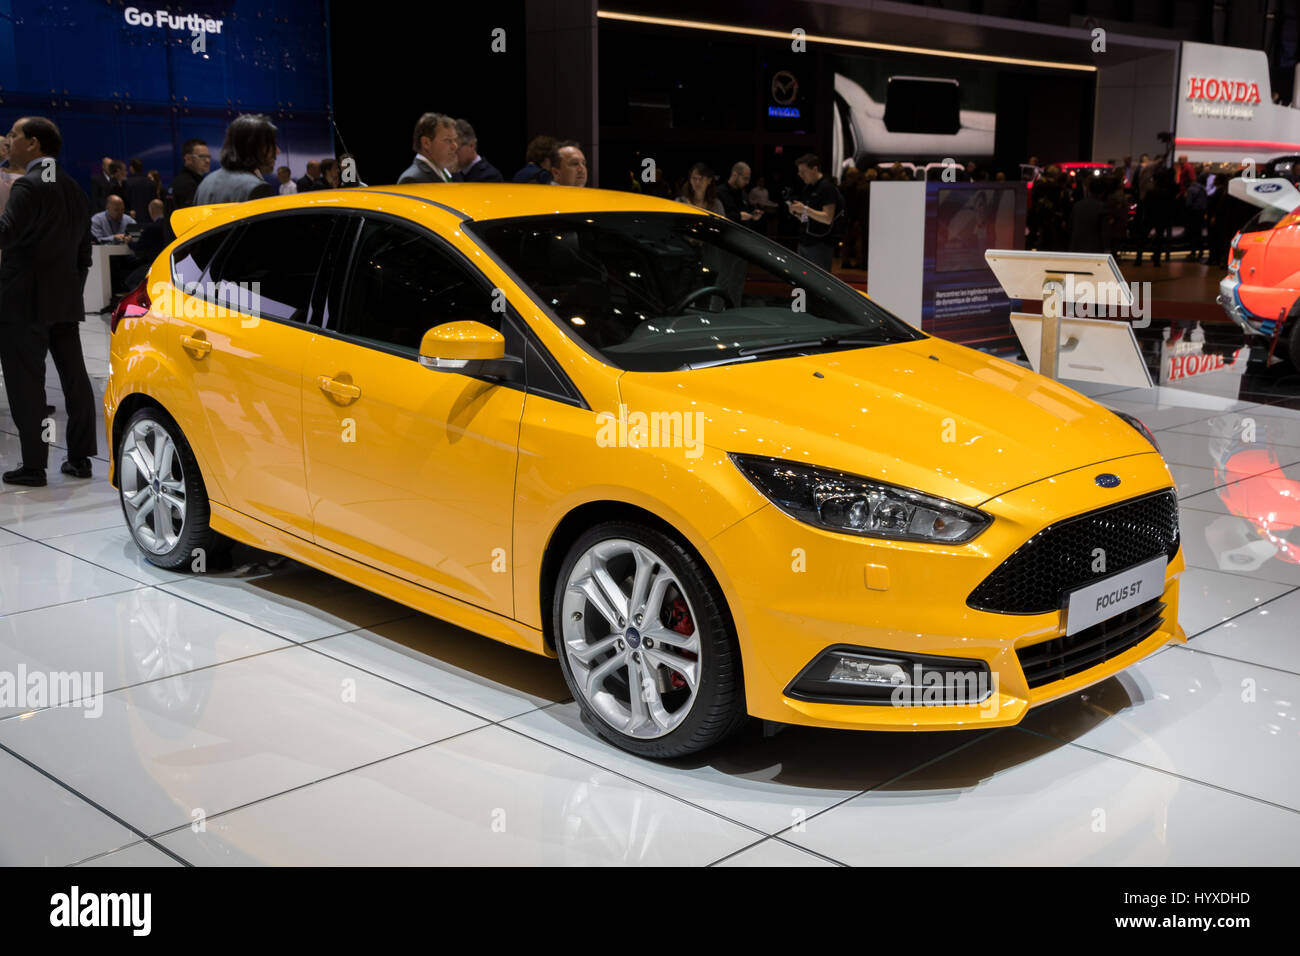 GENEVA SWITZERLAND - MARCH 7 2017 Ford Focus ST car shown at the 87th Geneva International Motor Show. & GENEVA SWITZERLAND - MARCH 7 2017: Ford Focus ST car shown at ... markmcfarlin.com